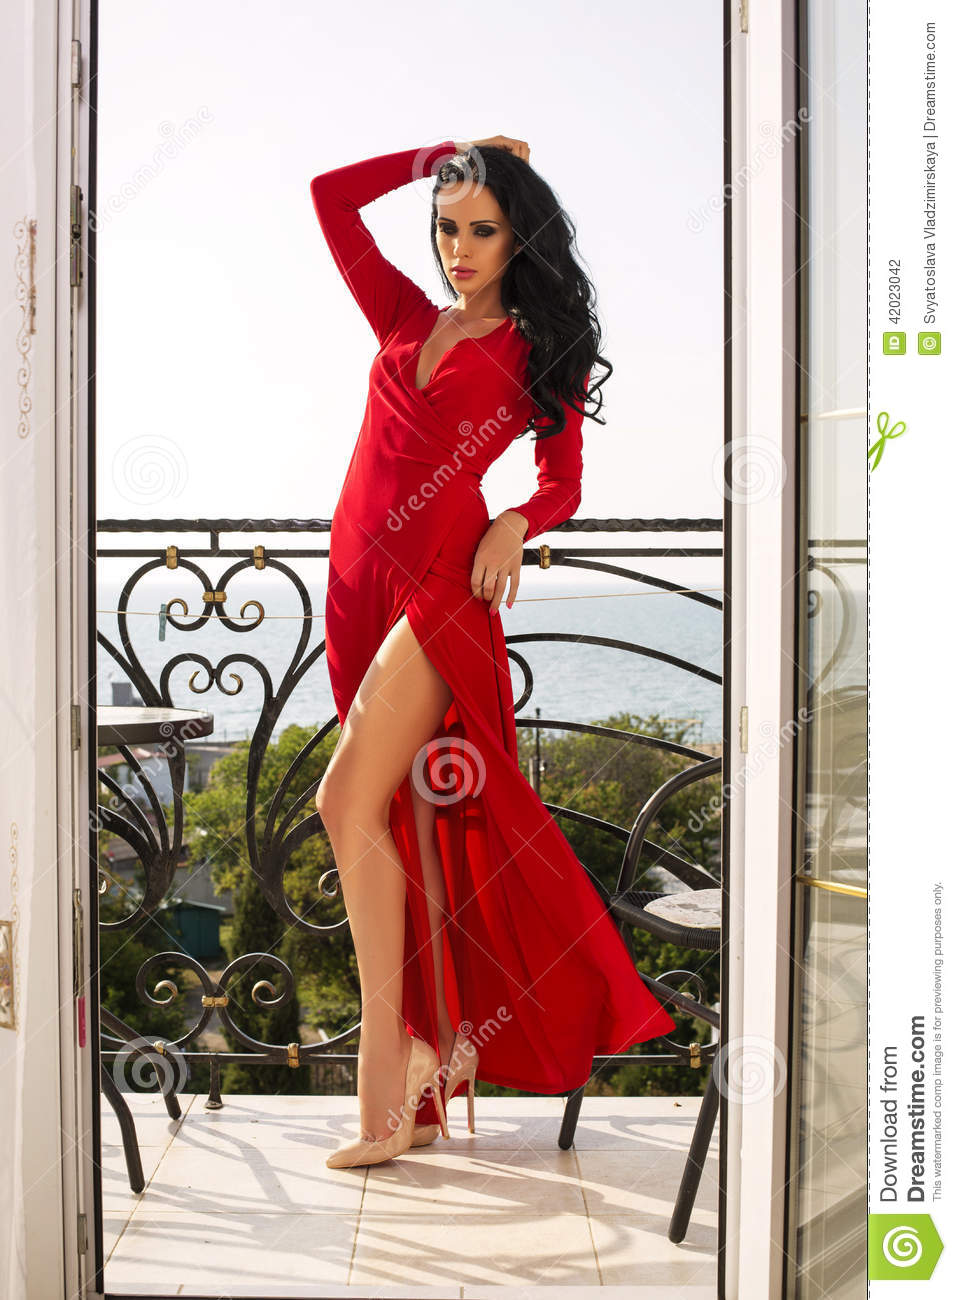 Rotes kleid, sexy kleid movie from JizzBunkercom video